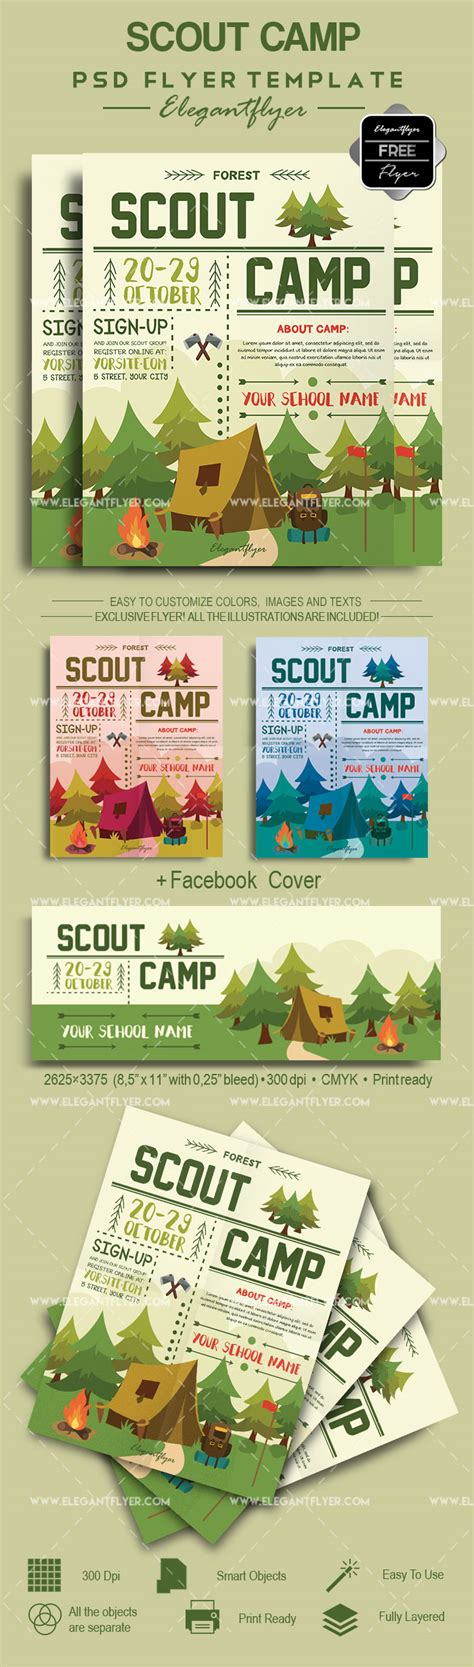 Scout C Free Flyer Psd Template By Elegantflyer Scout Flyer Template